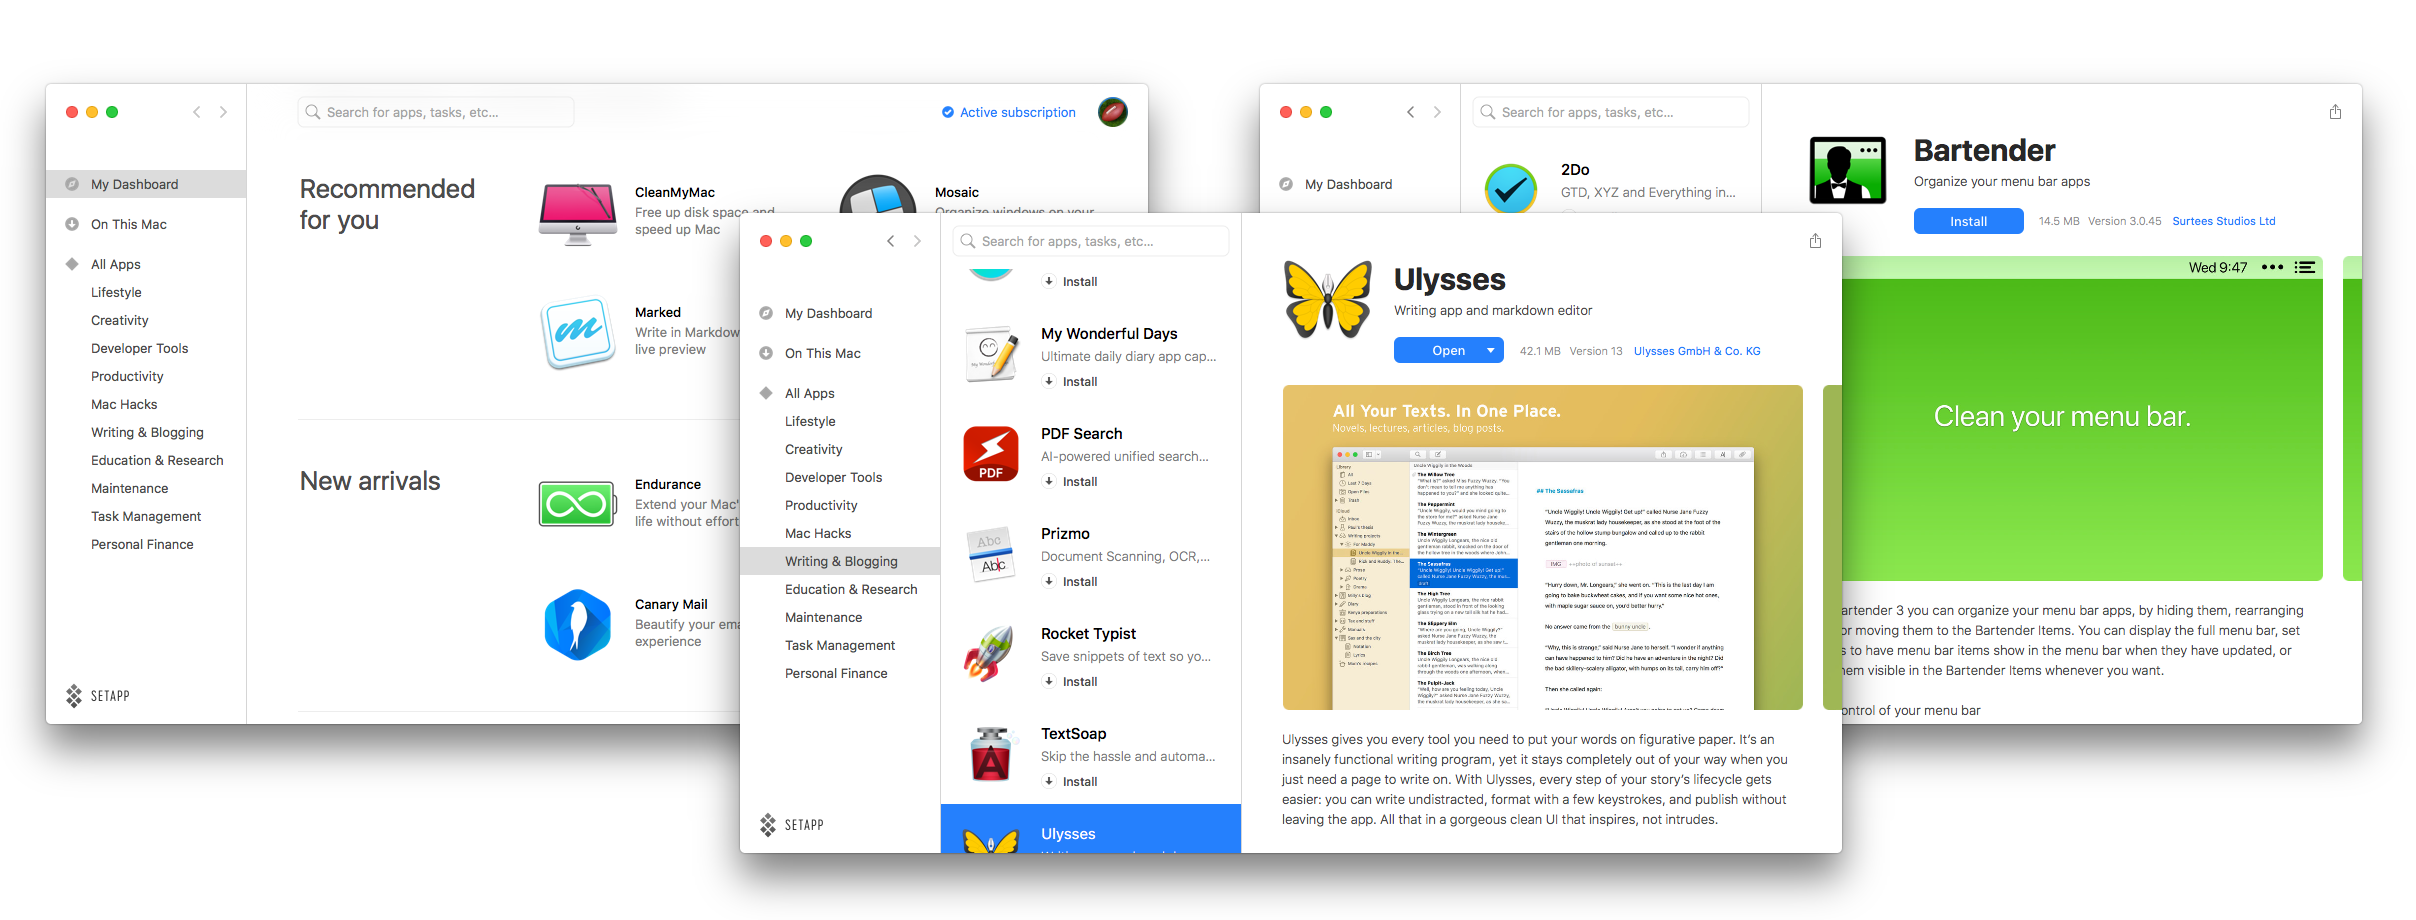 Setapp's subscription for Mac apps now at 20,000 paid users